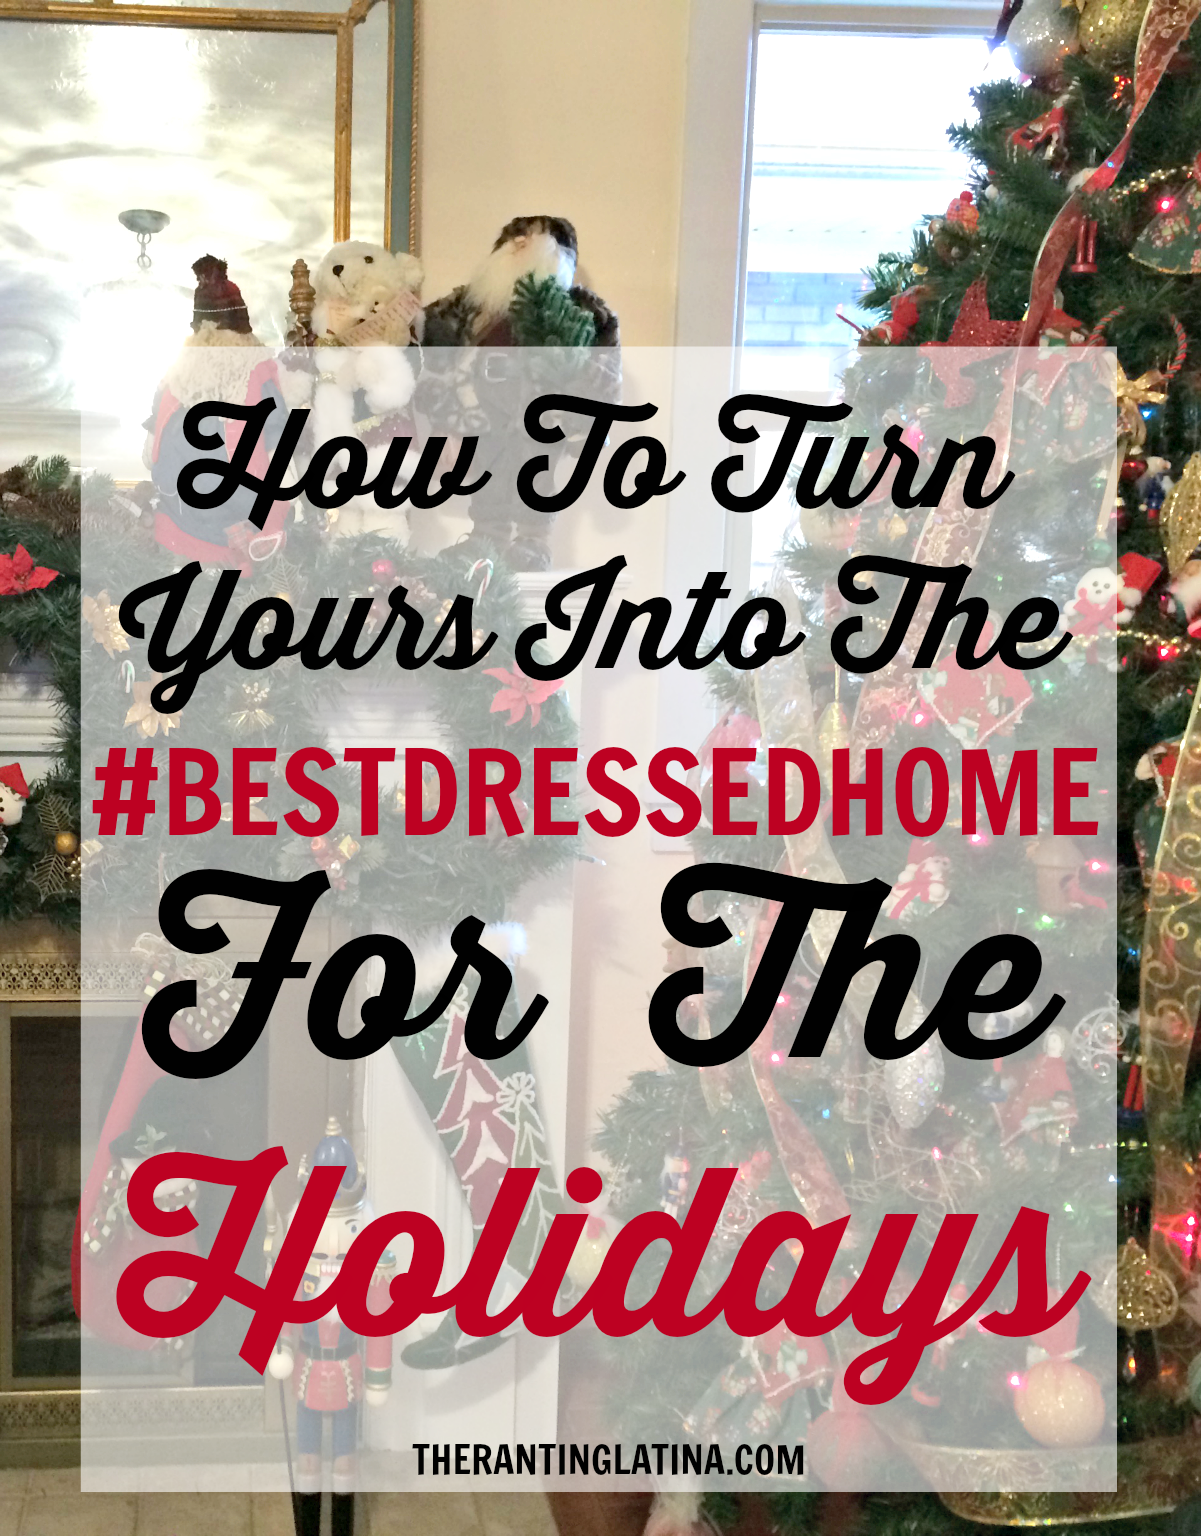 Holiday Decor Options to Make Your Home The #BestDressedHome